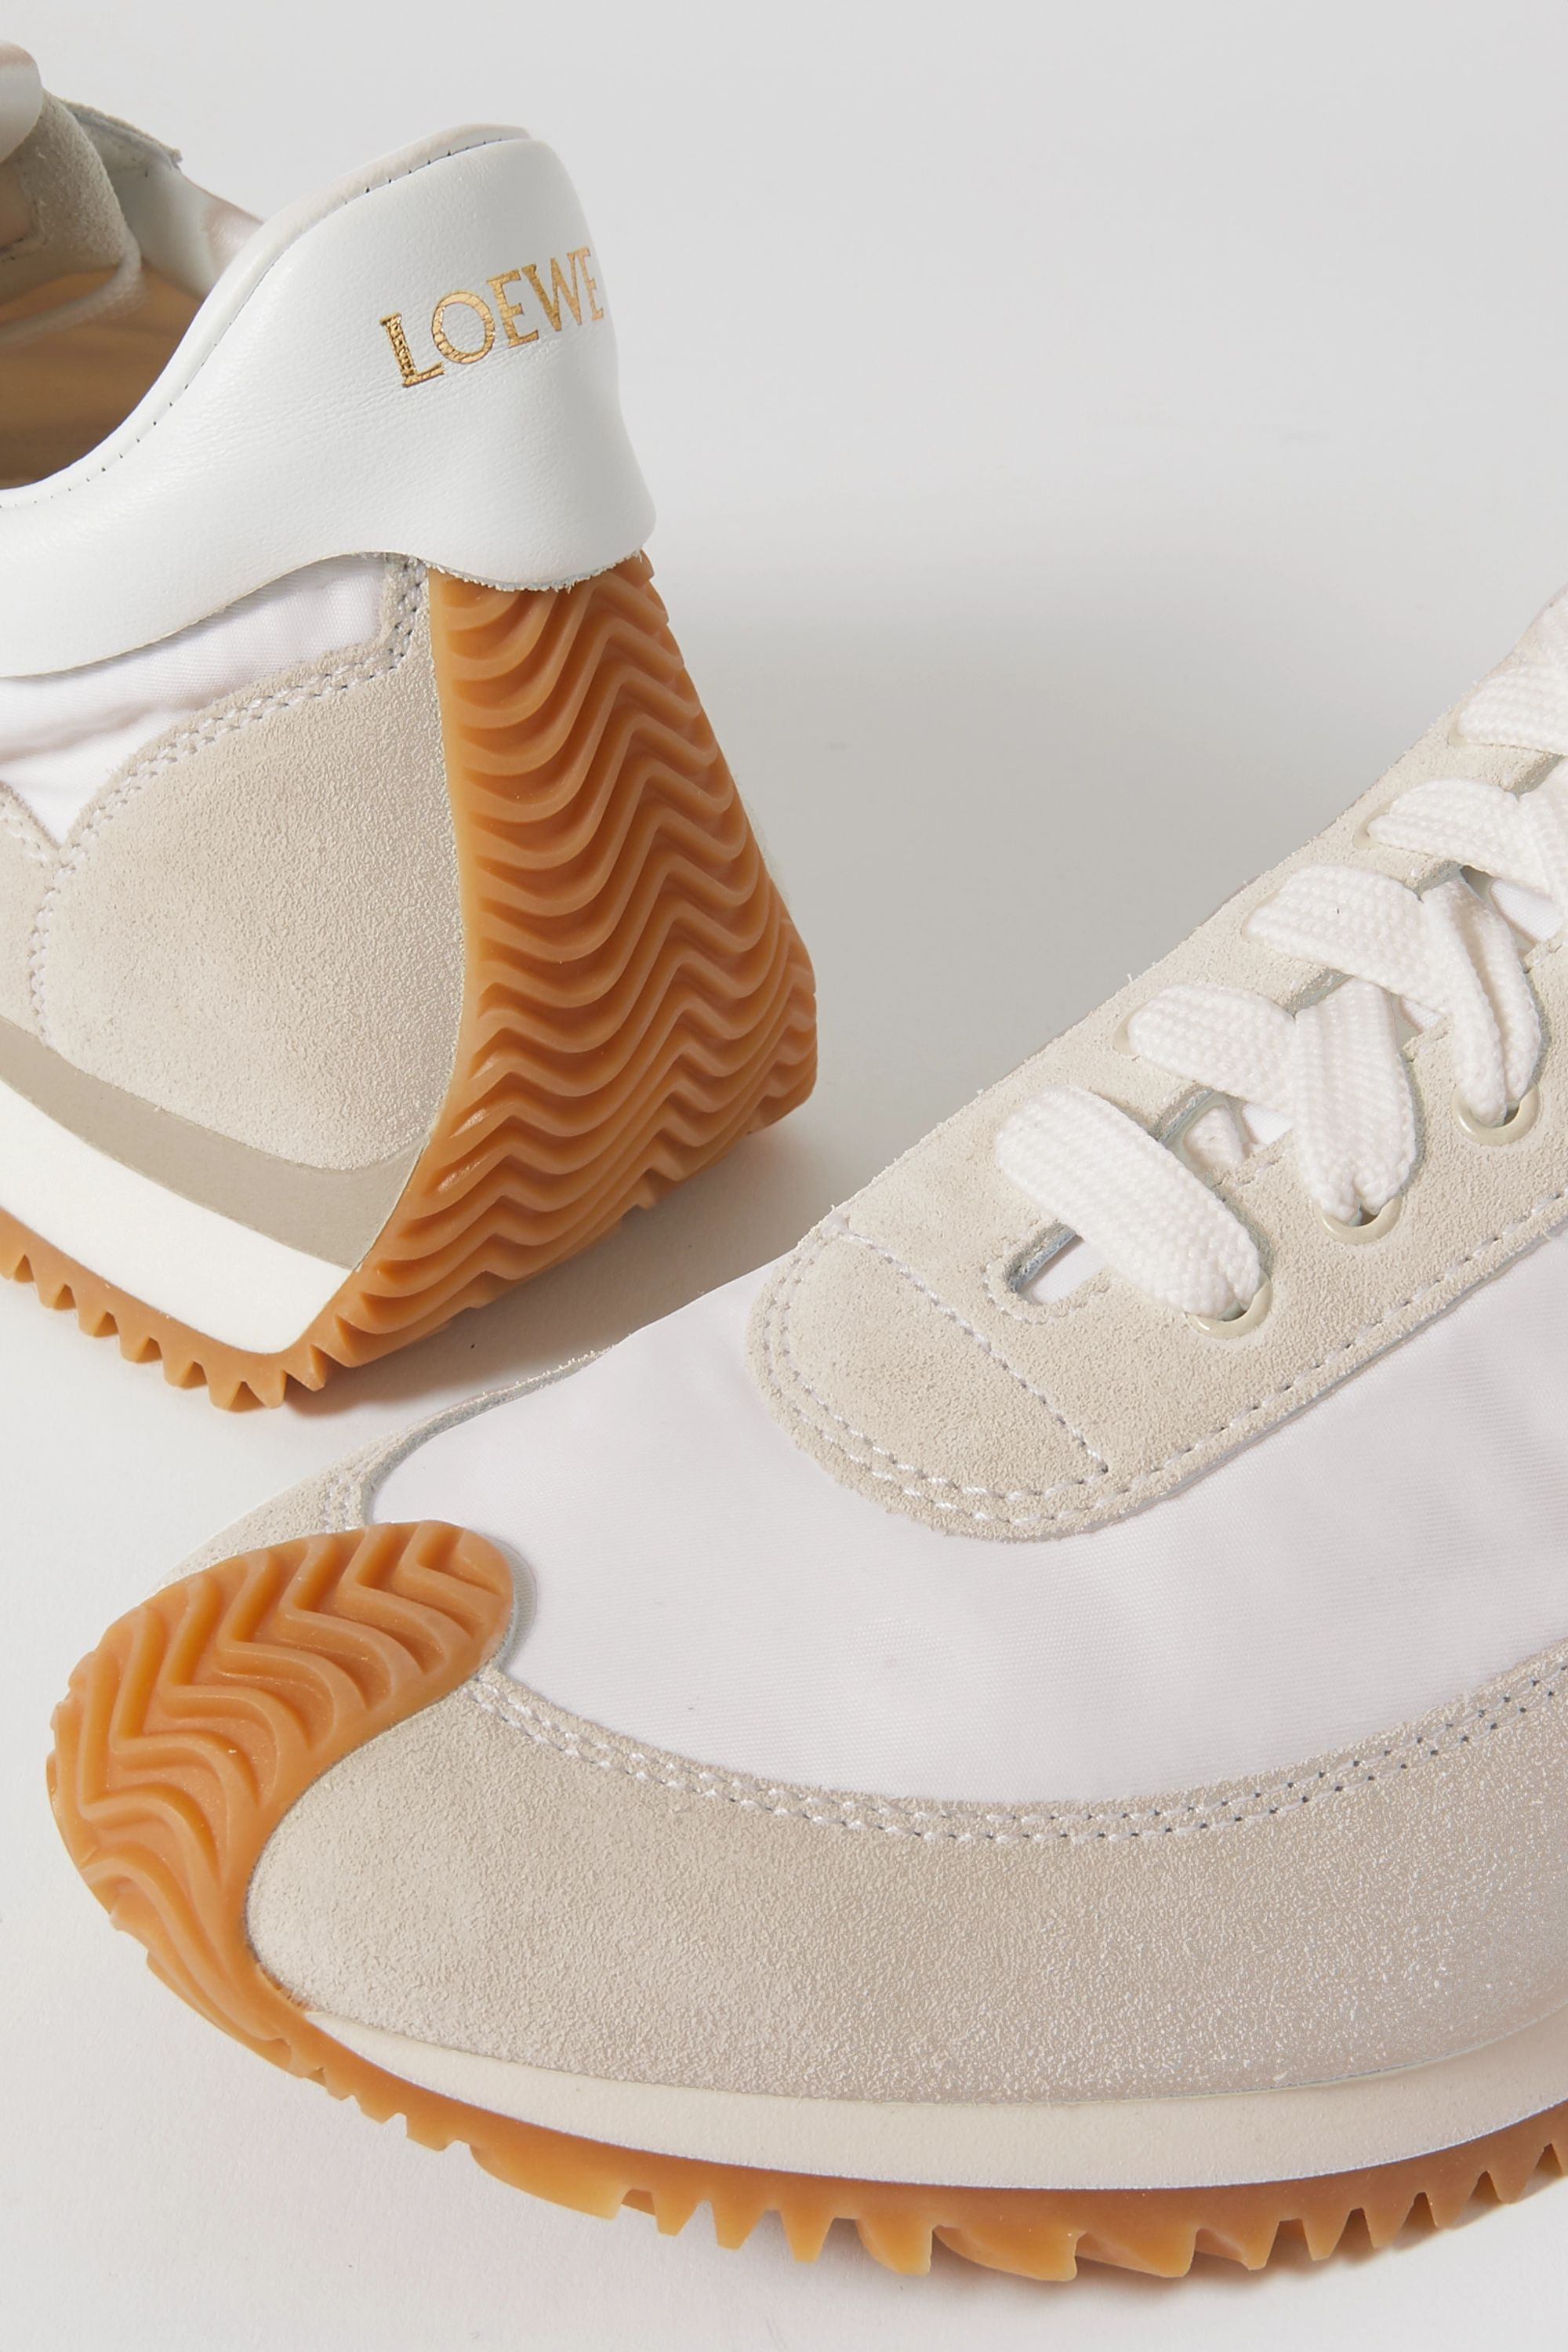 Loewe Flow suede, shell and leather sneakers